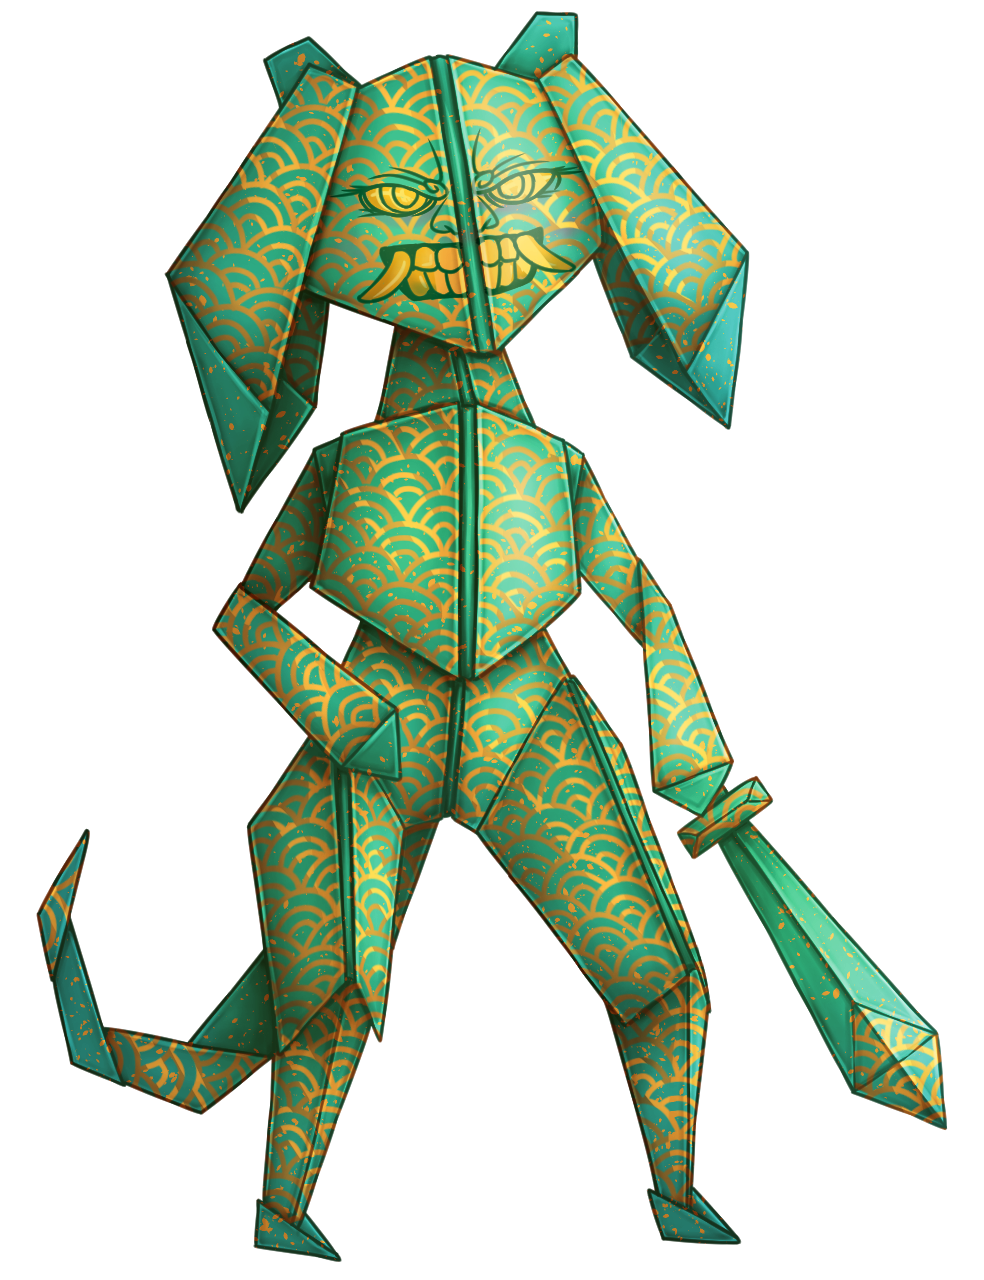 origami_by_t_finbo-db0xlig.png